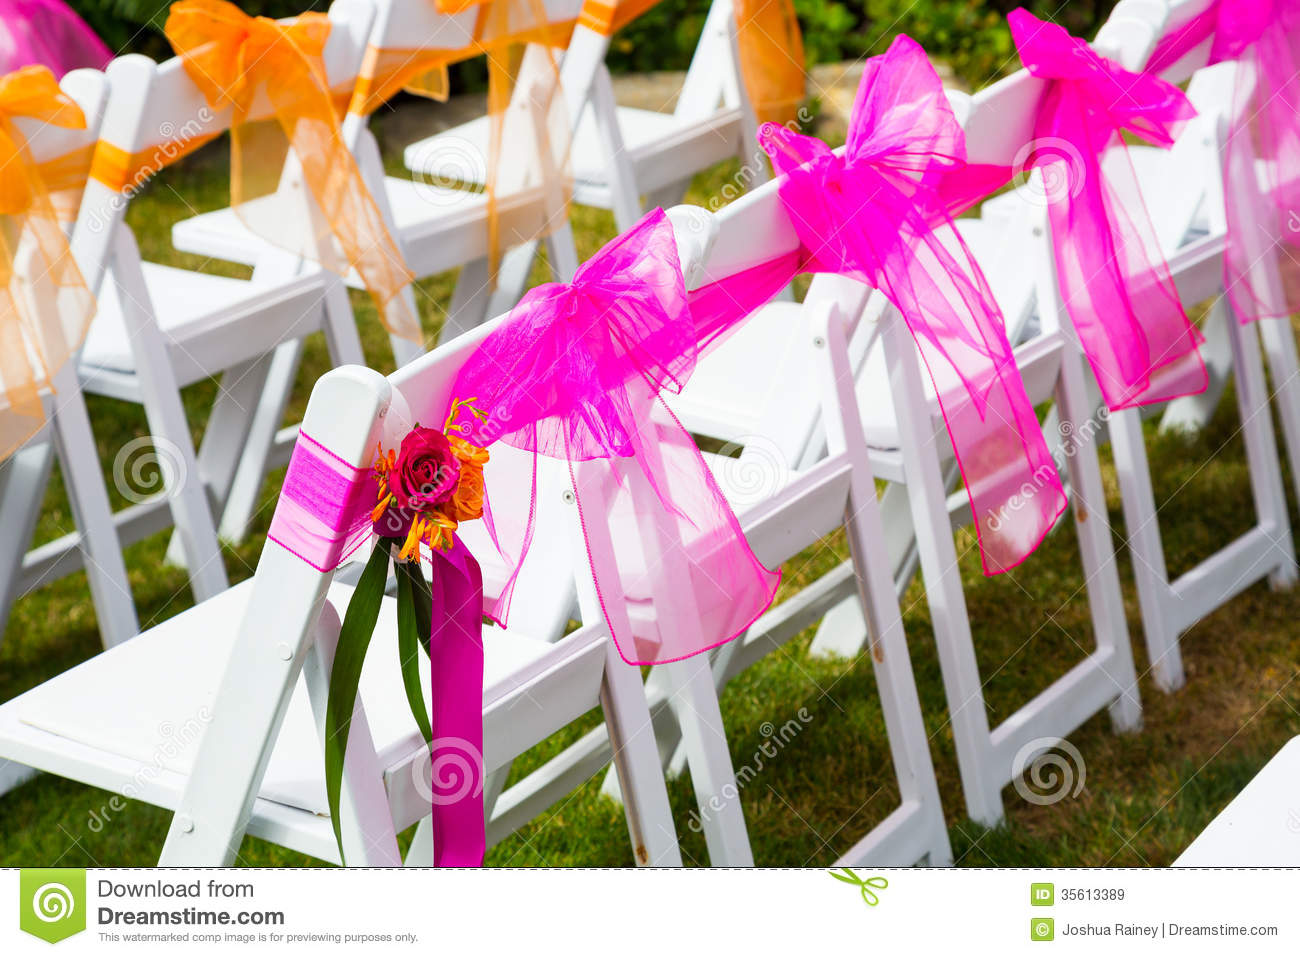 Wedding ceremony chair - Wedding Venue Chairs